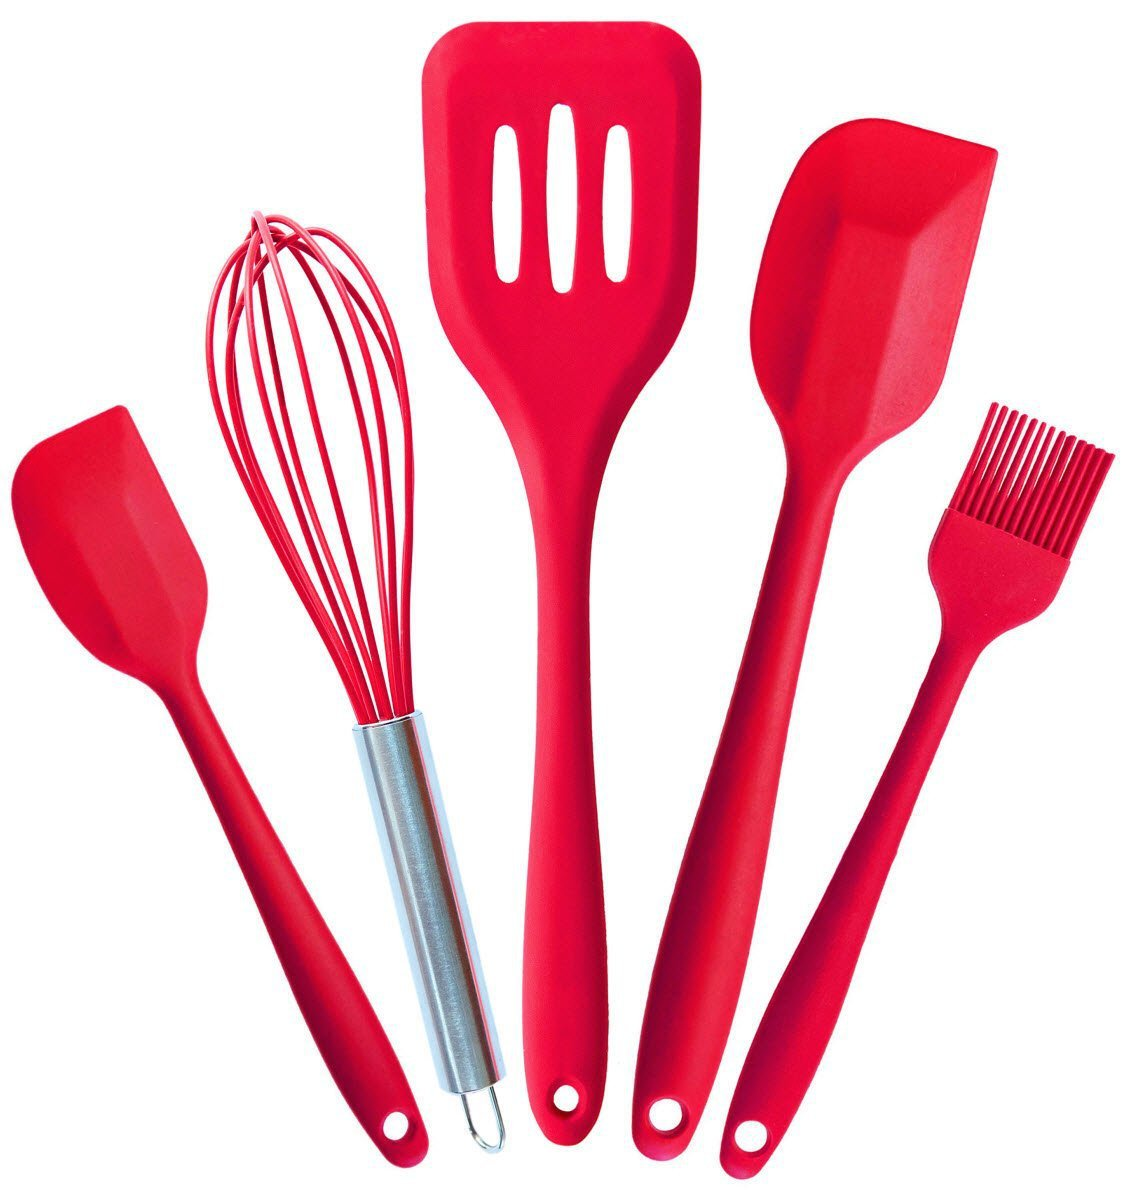 Silicone Kitchen Utensils Set 5 Piece in Hygienic Solid Coating Cherry Red